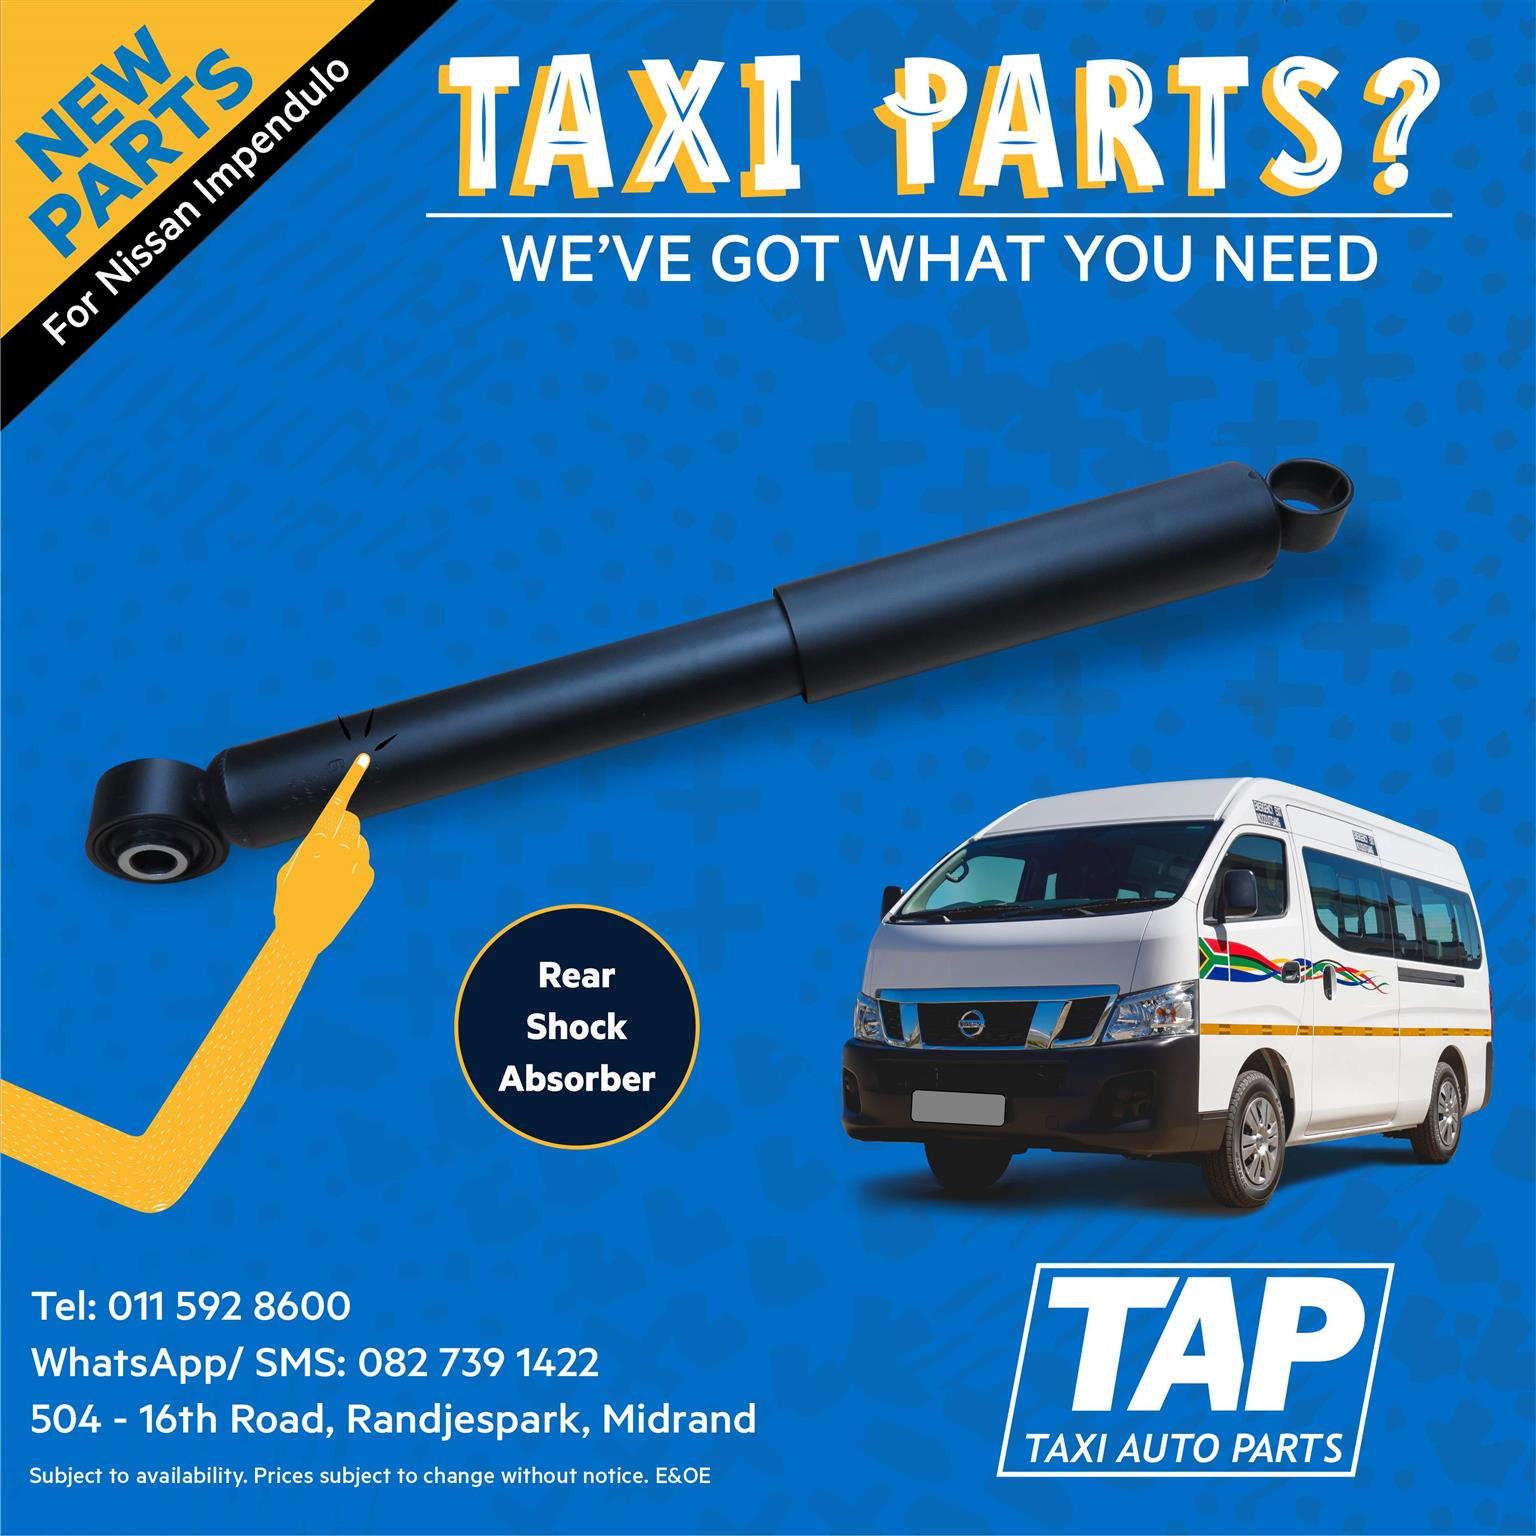 NEW Rear Shock Absorber for Nissan Impendulo - Taxi Auto Parts quality spares - TAP